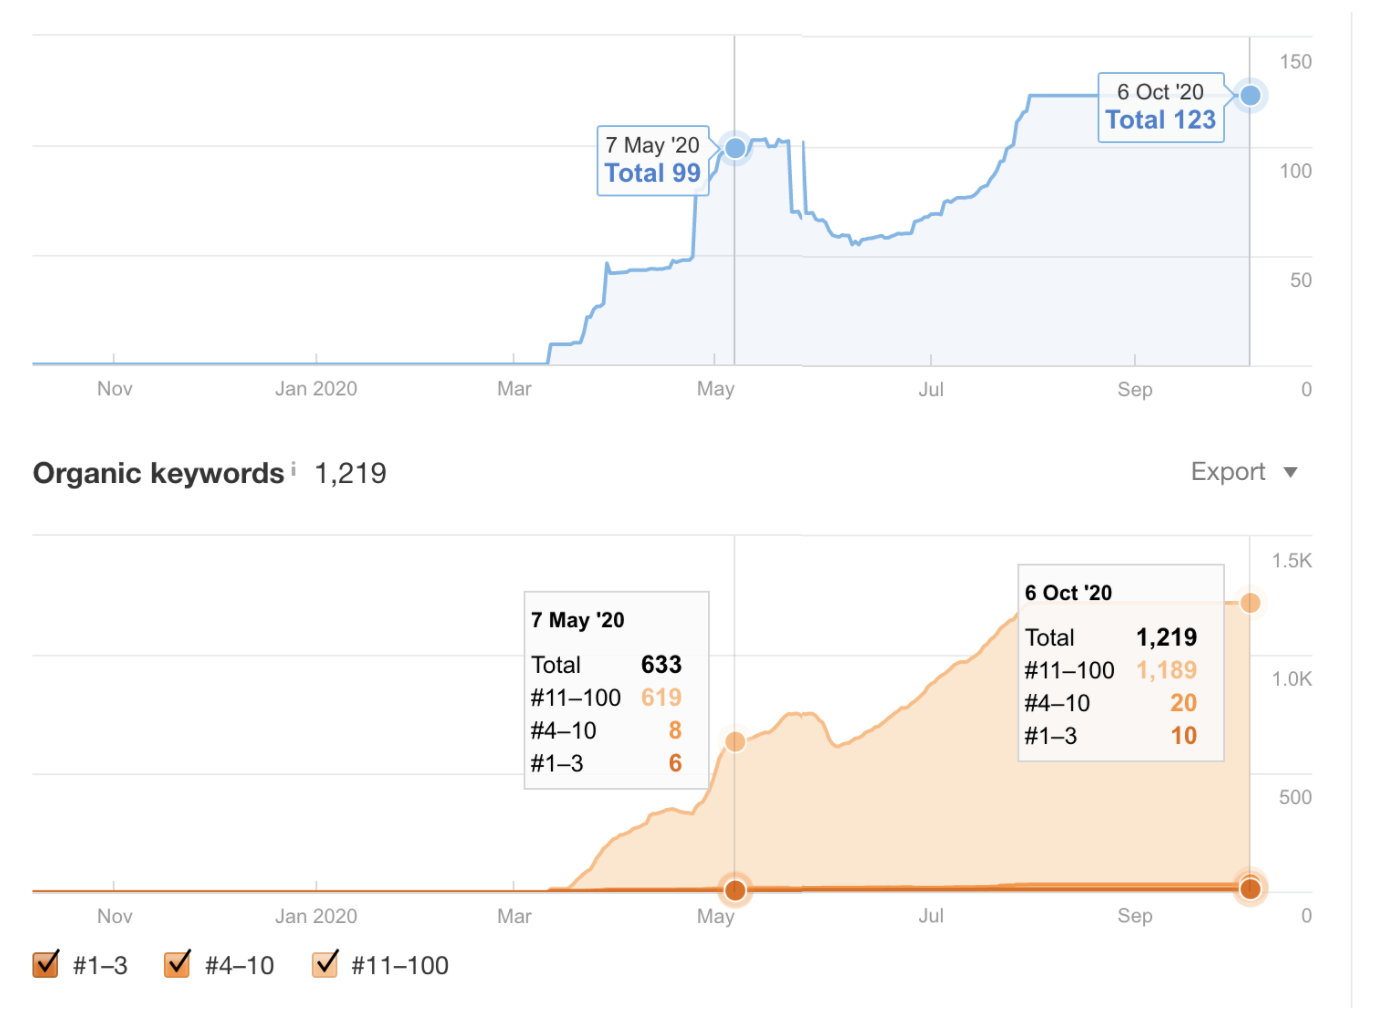 Organic traffic and keywords from May 7, 2020, to Oct 6, 2020.